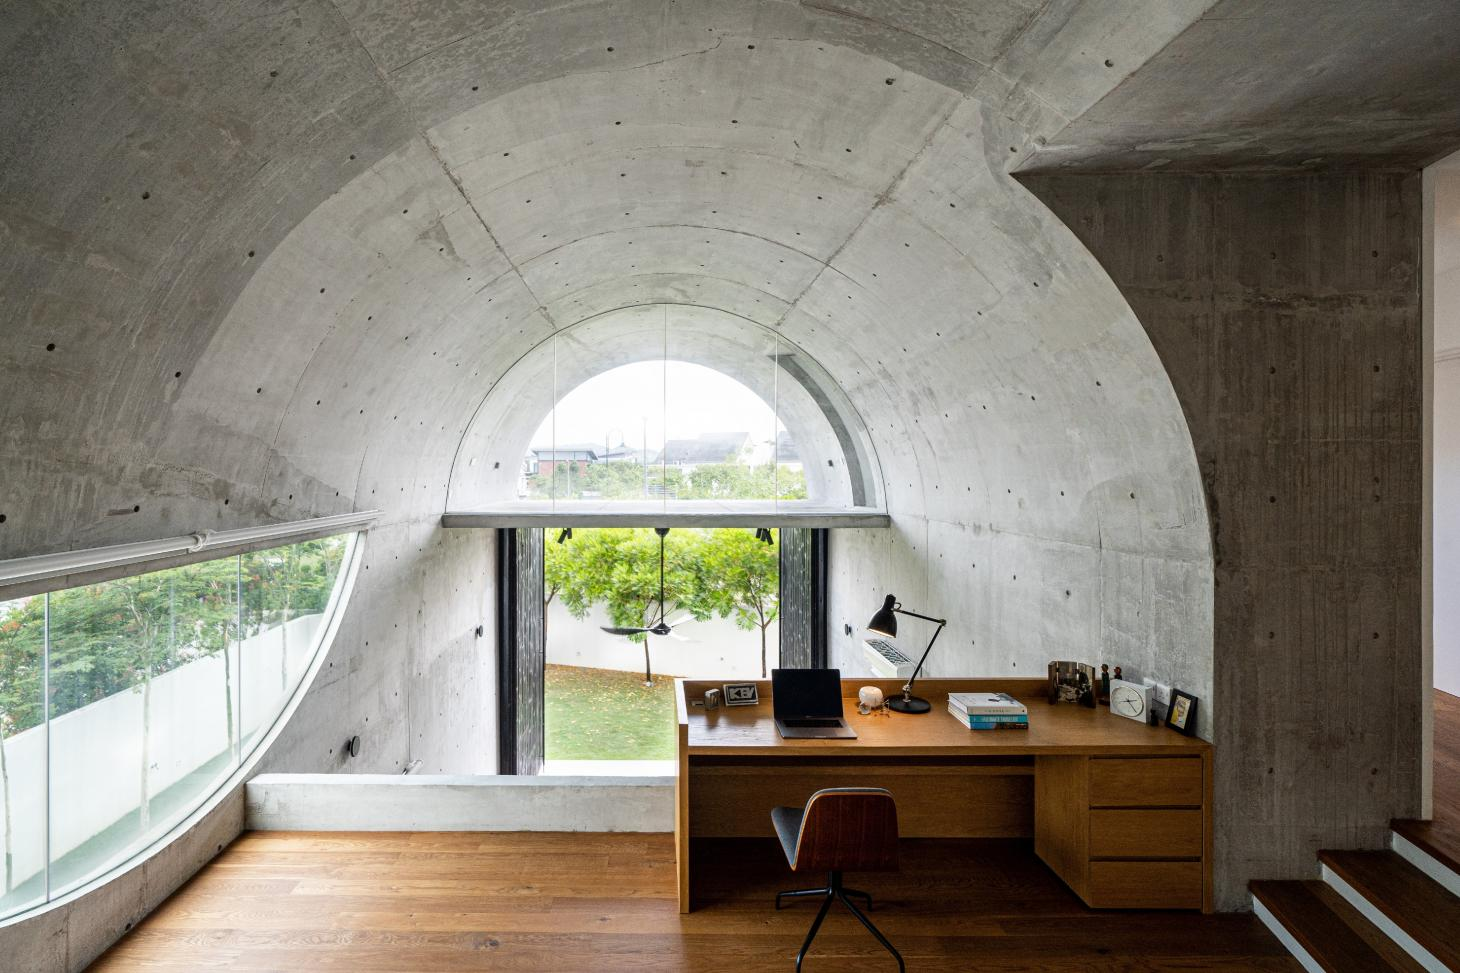 study under the concrete barrel vaulted roof at Bewboc house in Malaysia